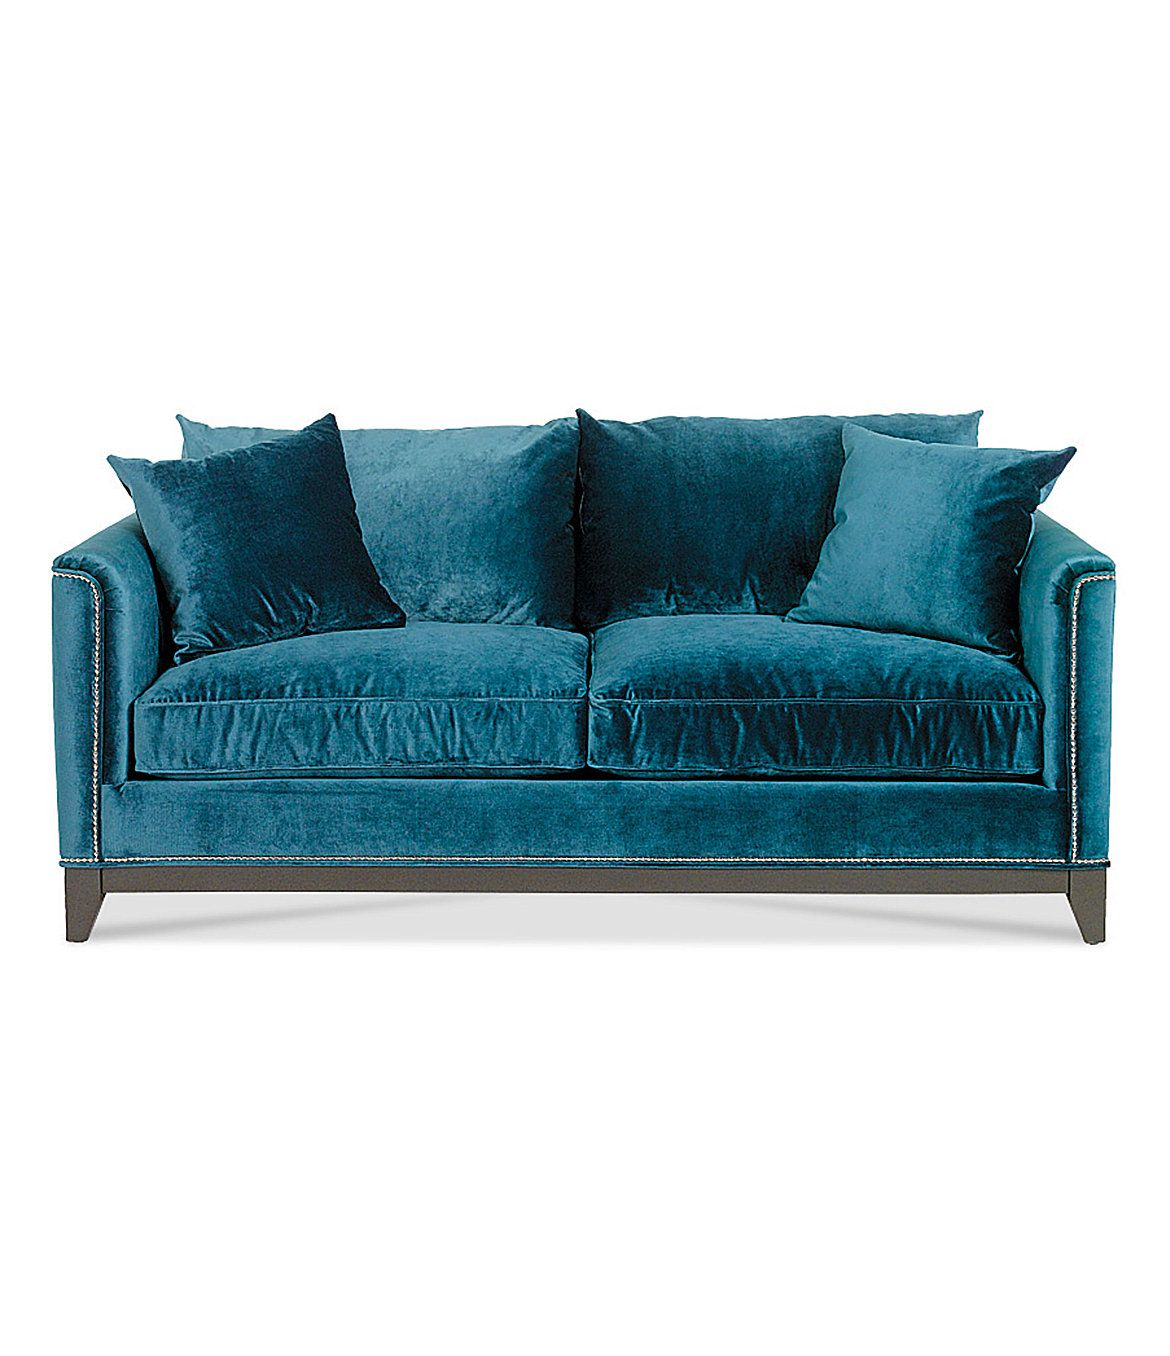 Jonathan Louis Mystere Sofa From